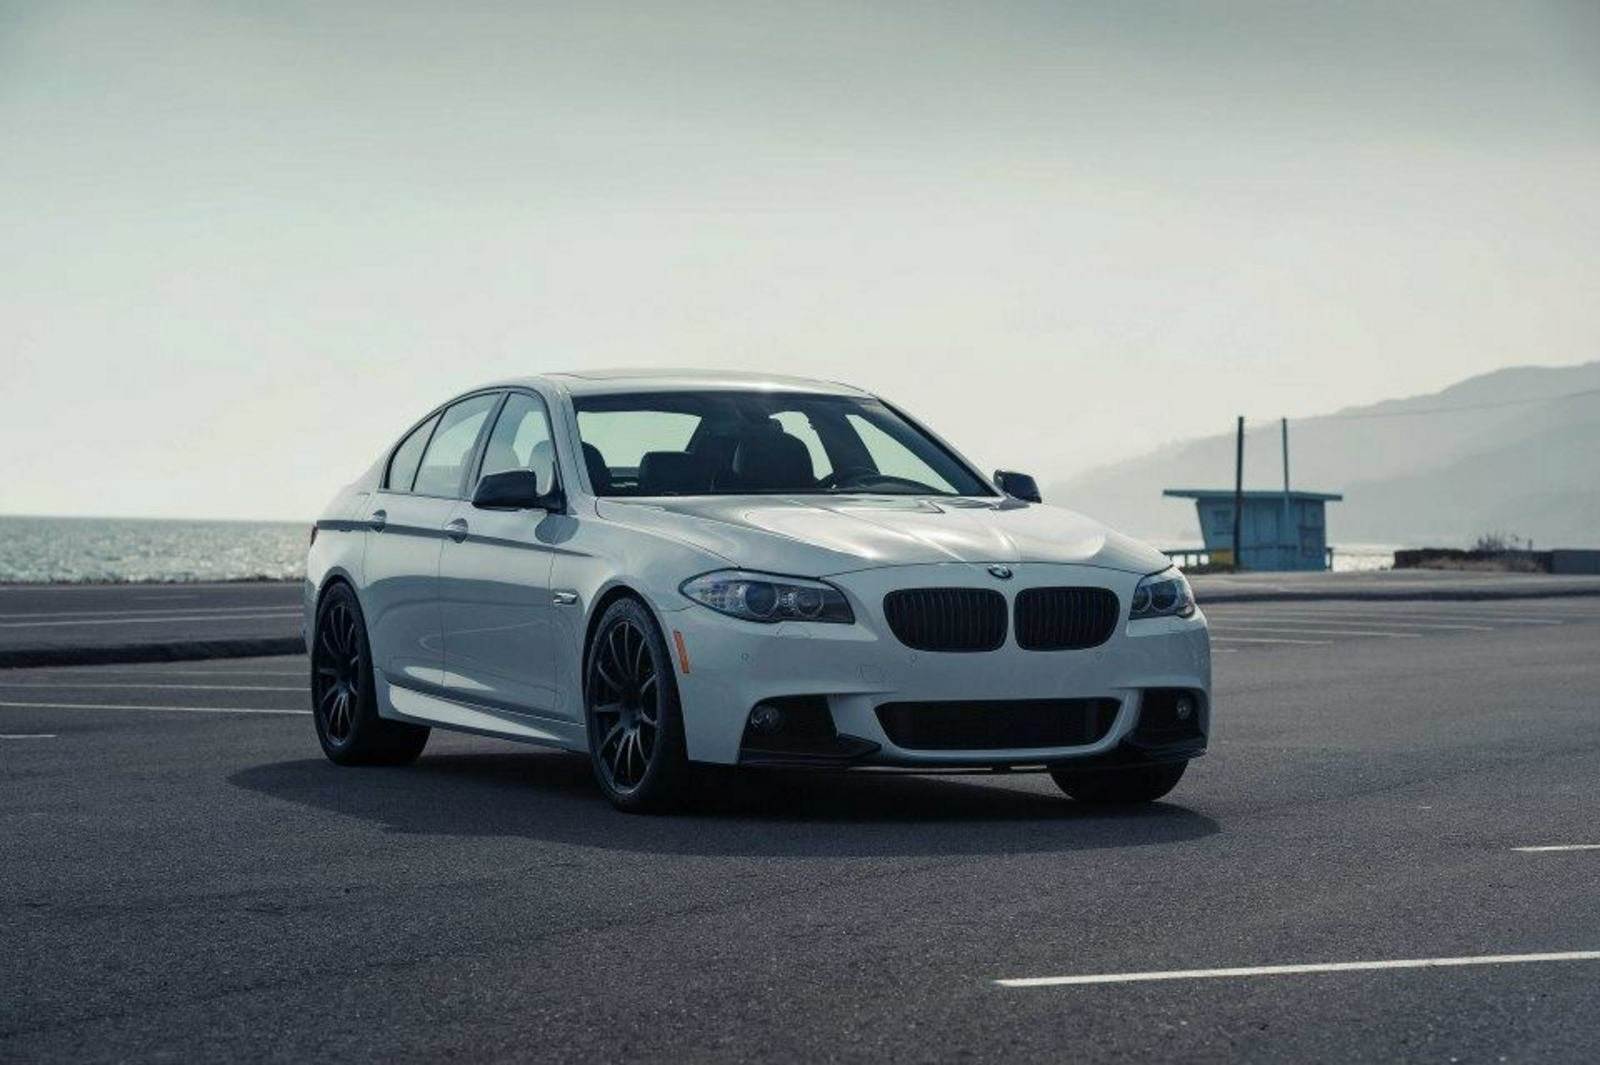 2013 bmw 550i s3dinan engineering review - top speed